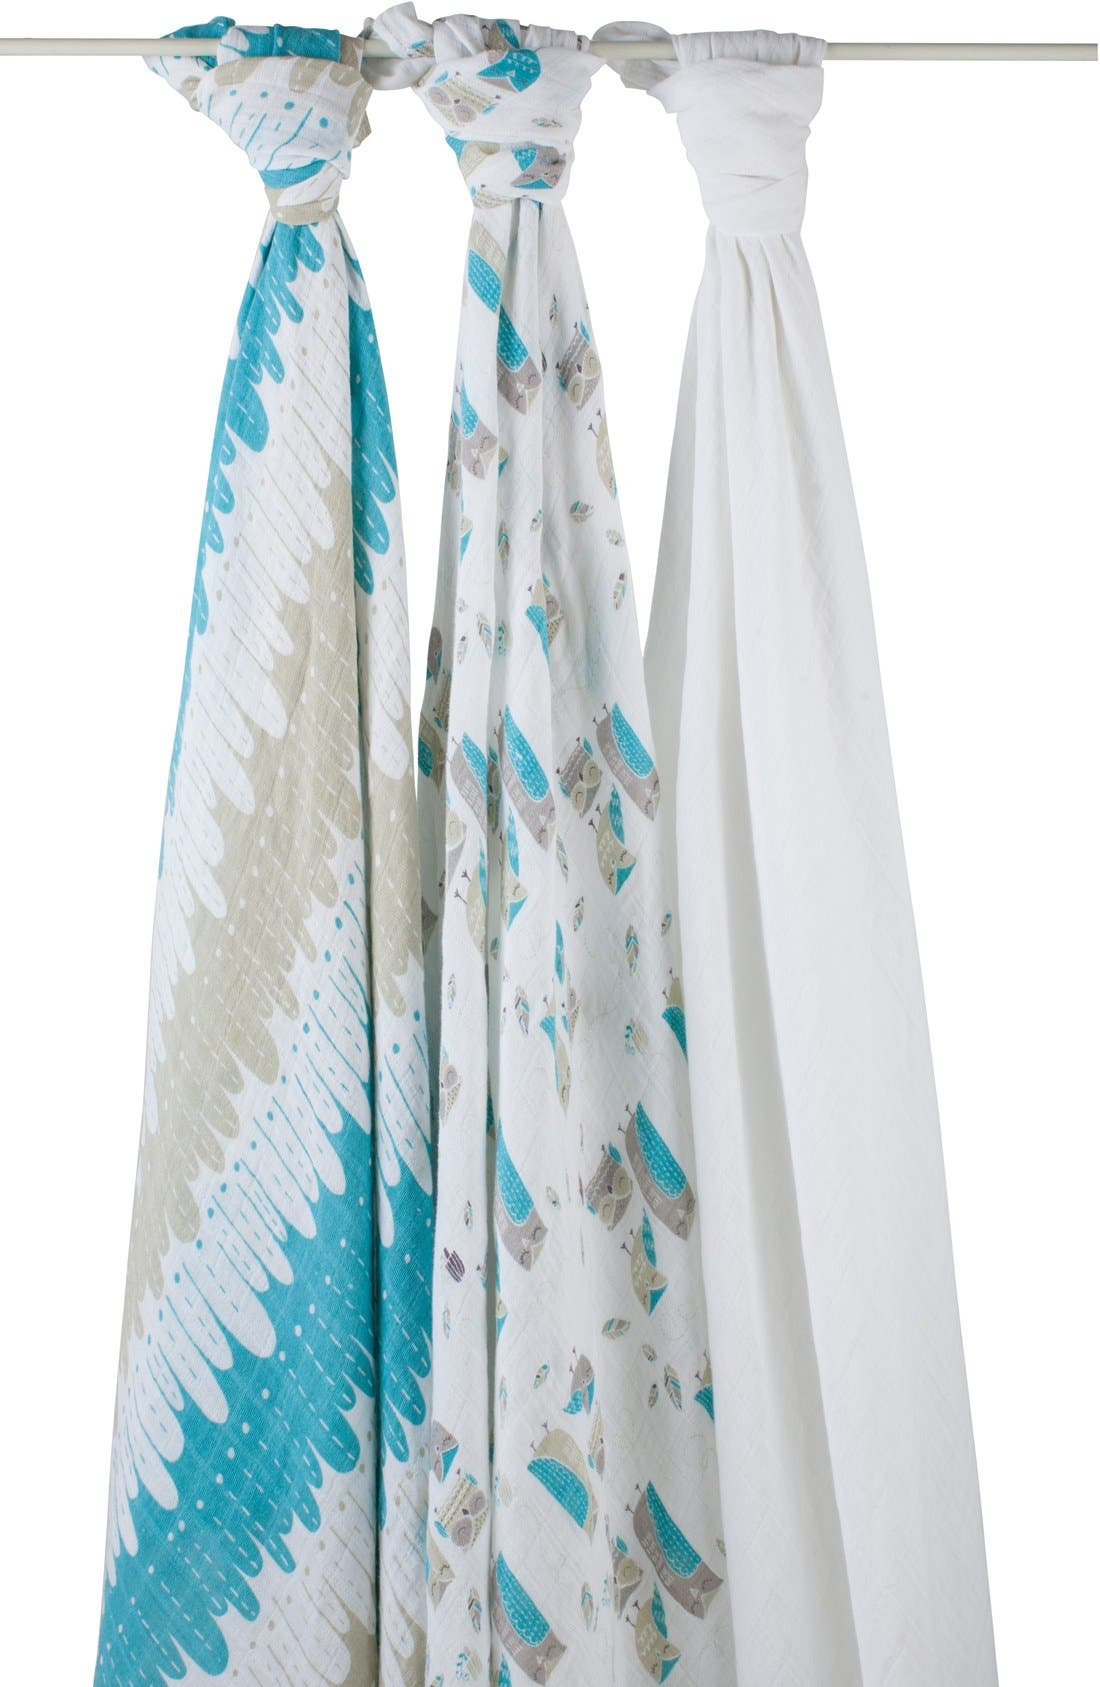 Alternate Image 1 Selected - aden + anais Organic Swaddling Cloths (3-Pack)